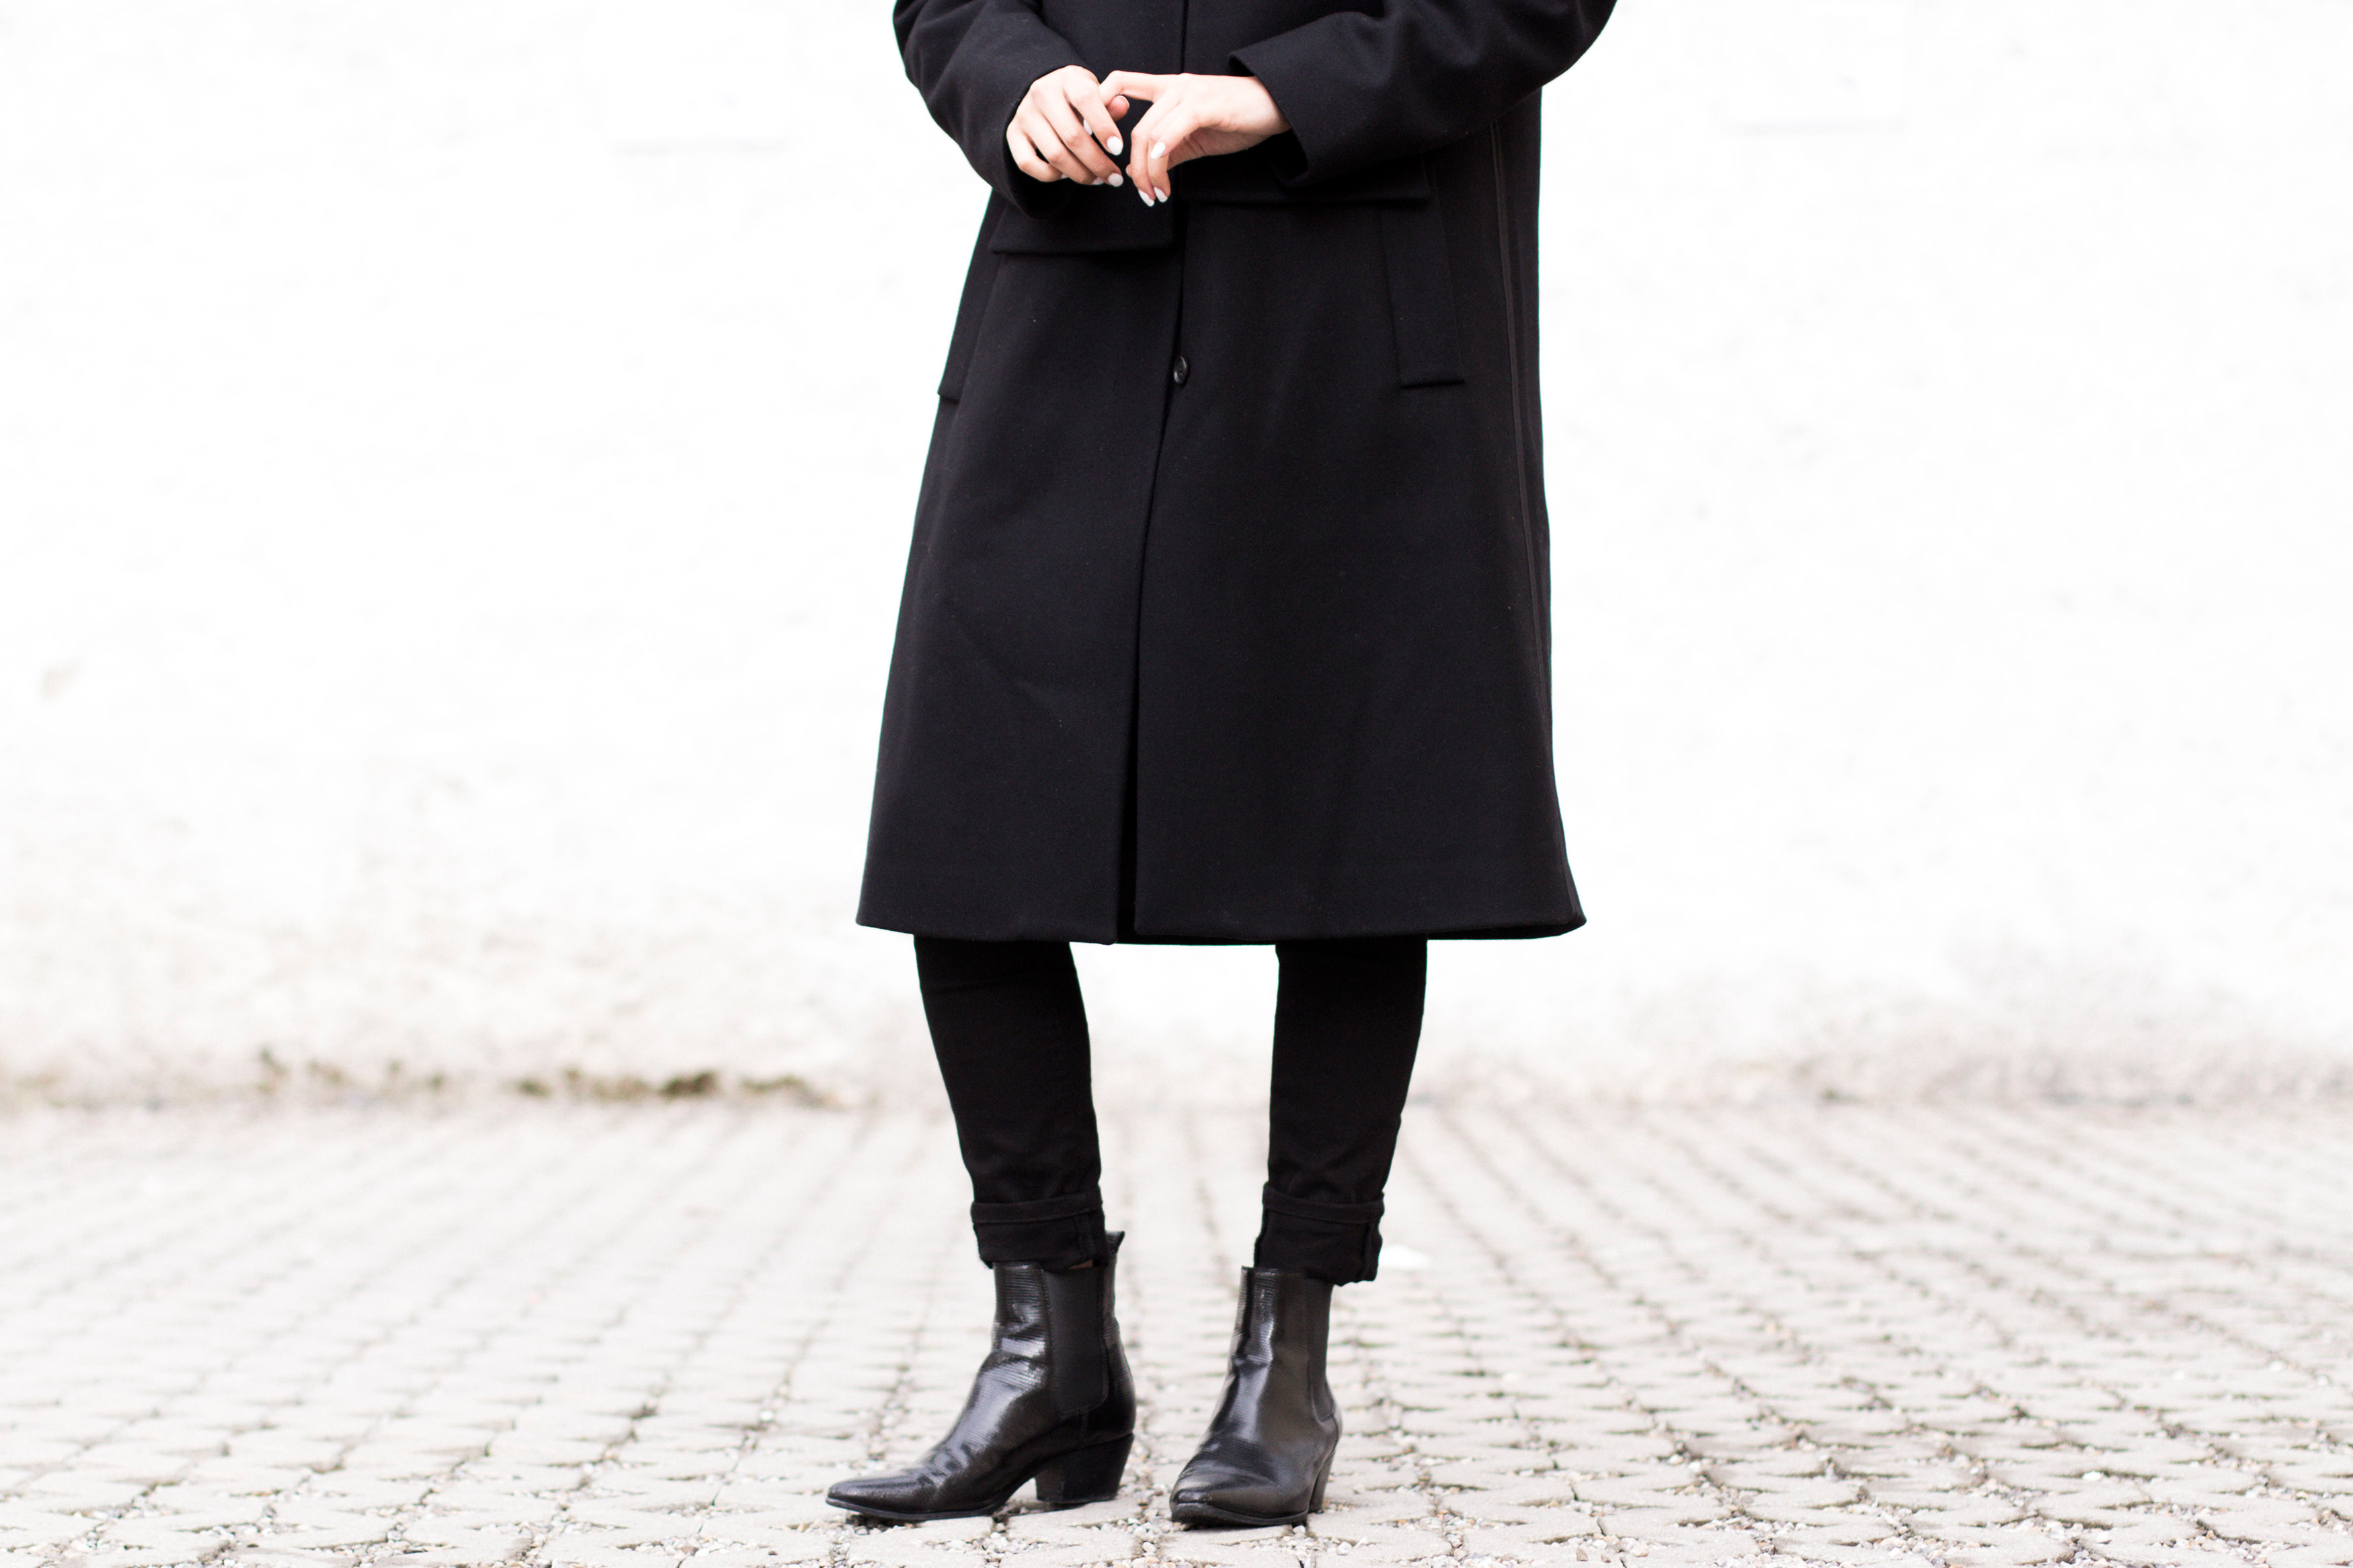 IHEARTALICE – Travel, Lifestyle & Fashion-Blog from Berlin/Germany by Alice M. Huynh: Maison Martin Margiela Black Wool Coat, Acne Pin Black Jeans, Saint Laurent Paris Lizard Stamp Boots